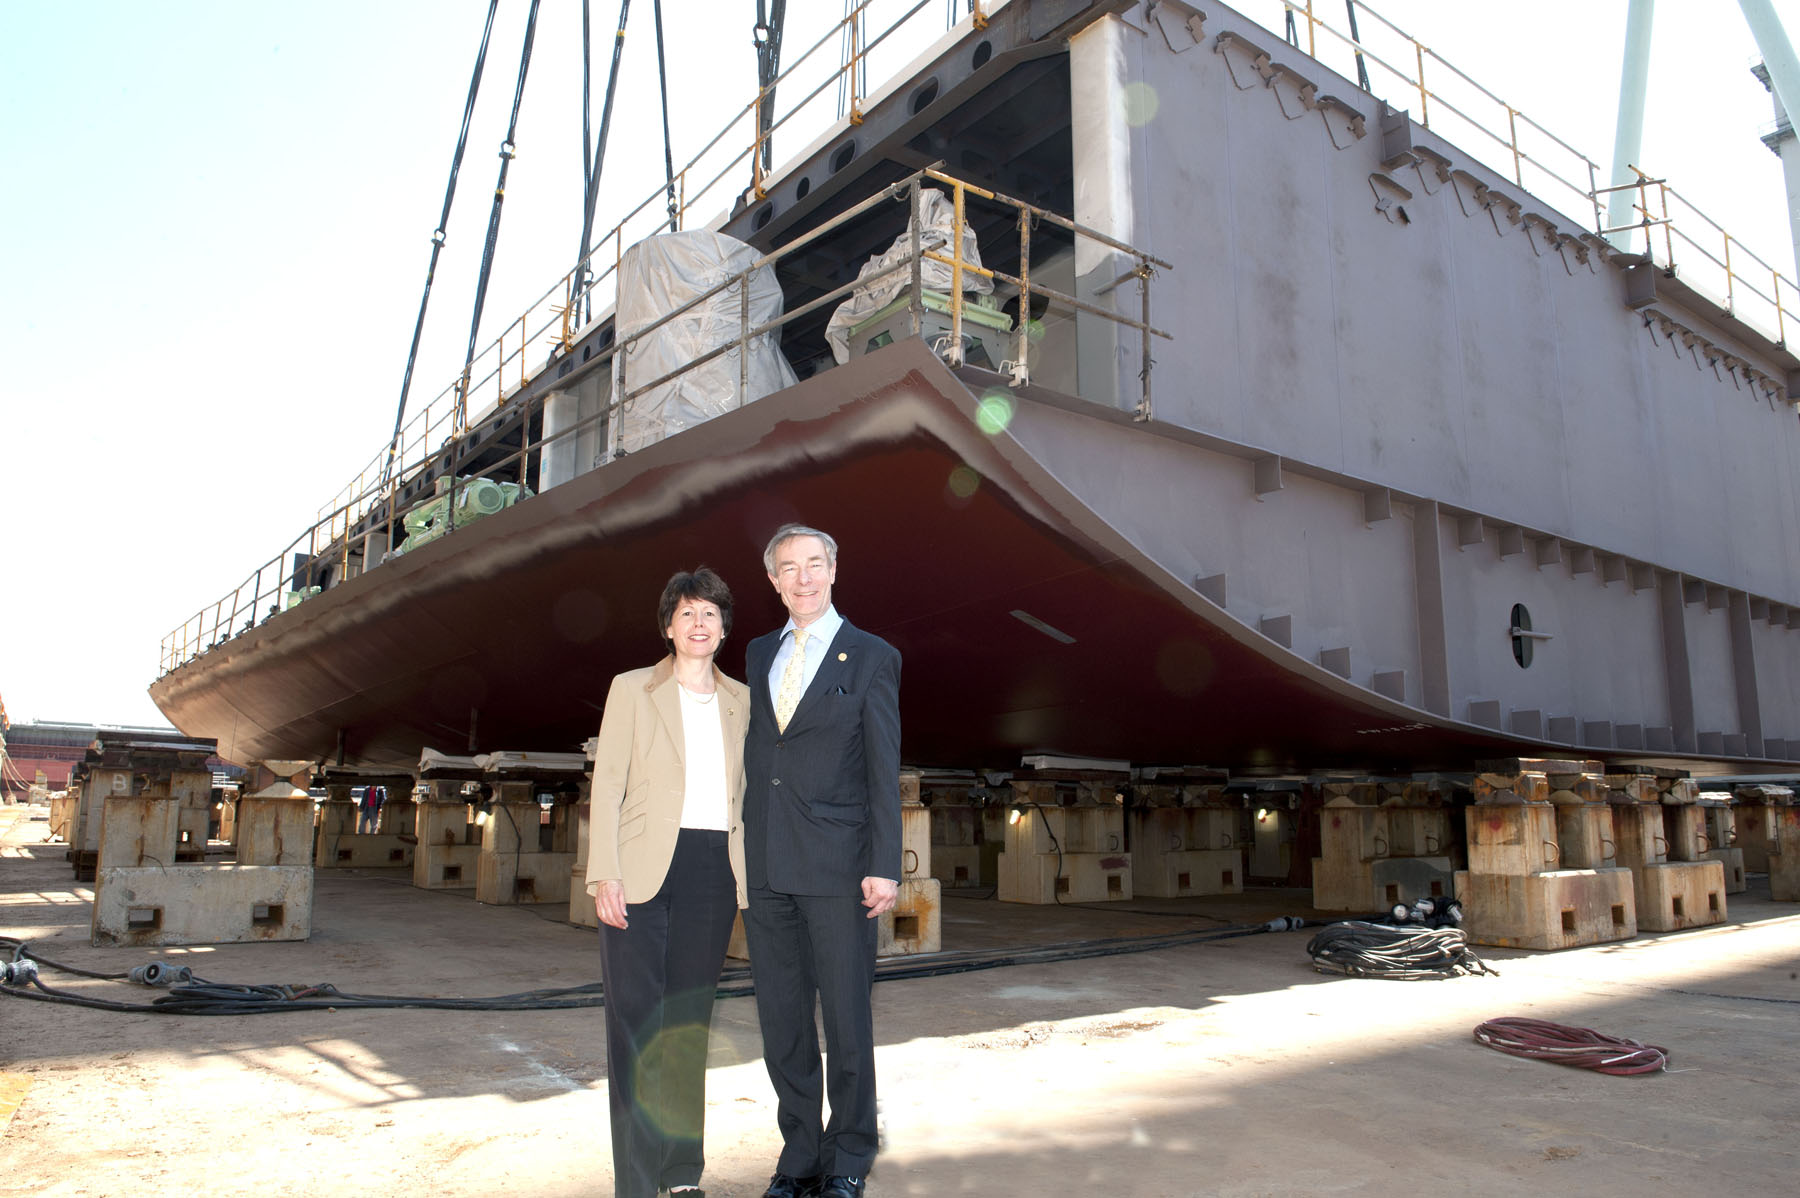 Keel Laying Images of P&O Cruises World Cruising's new cruise ship